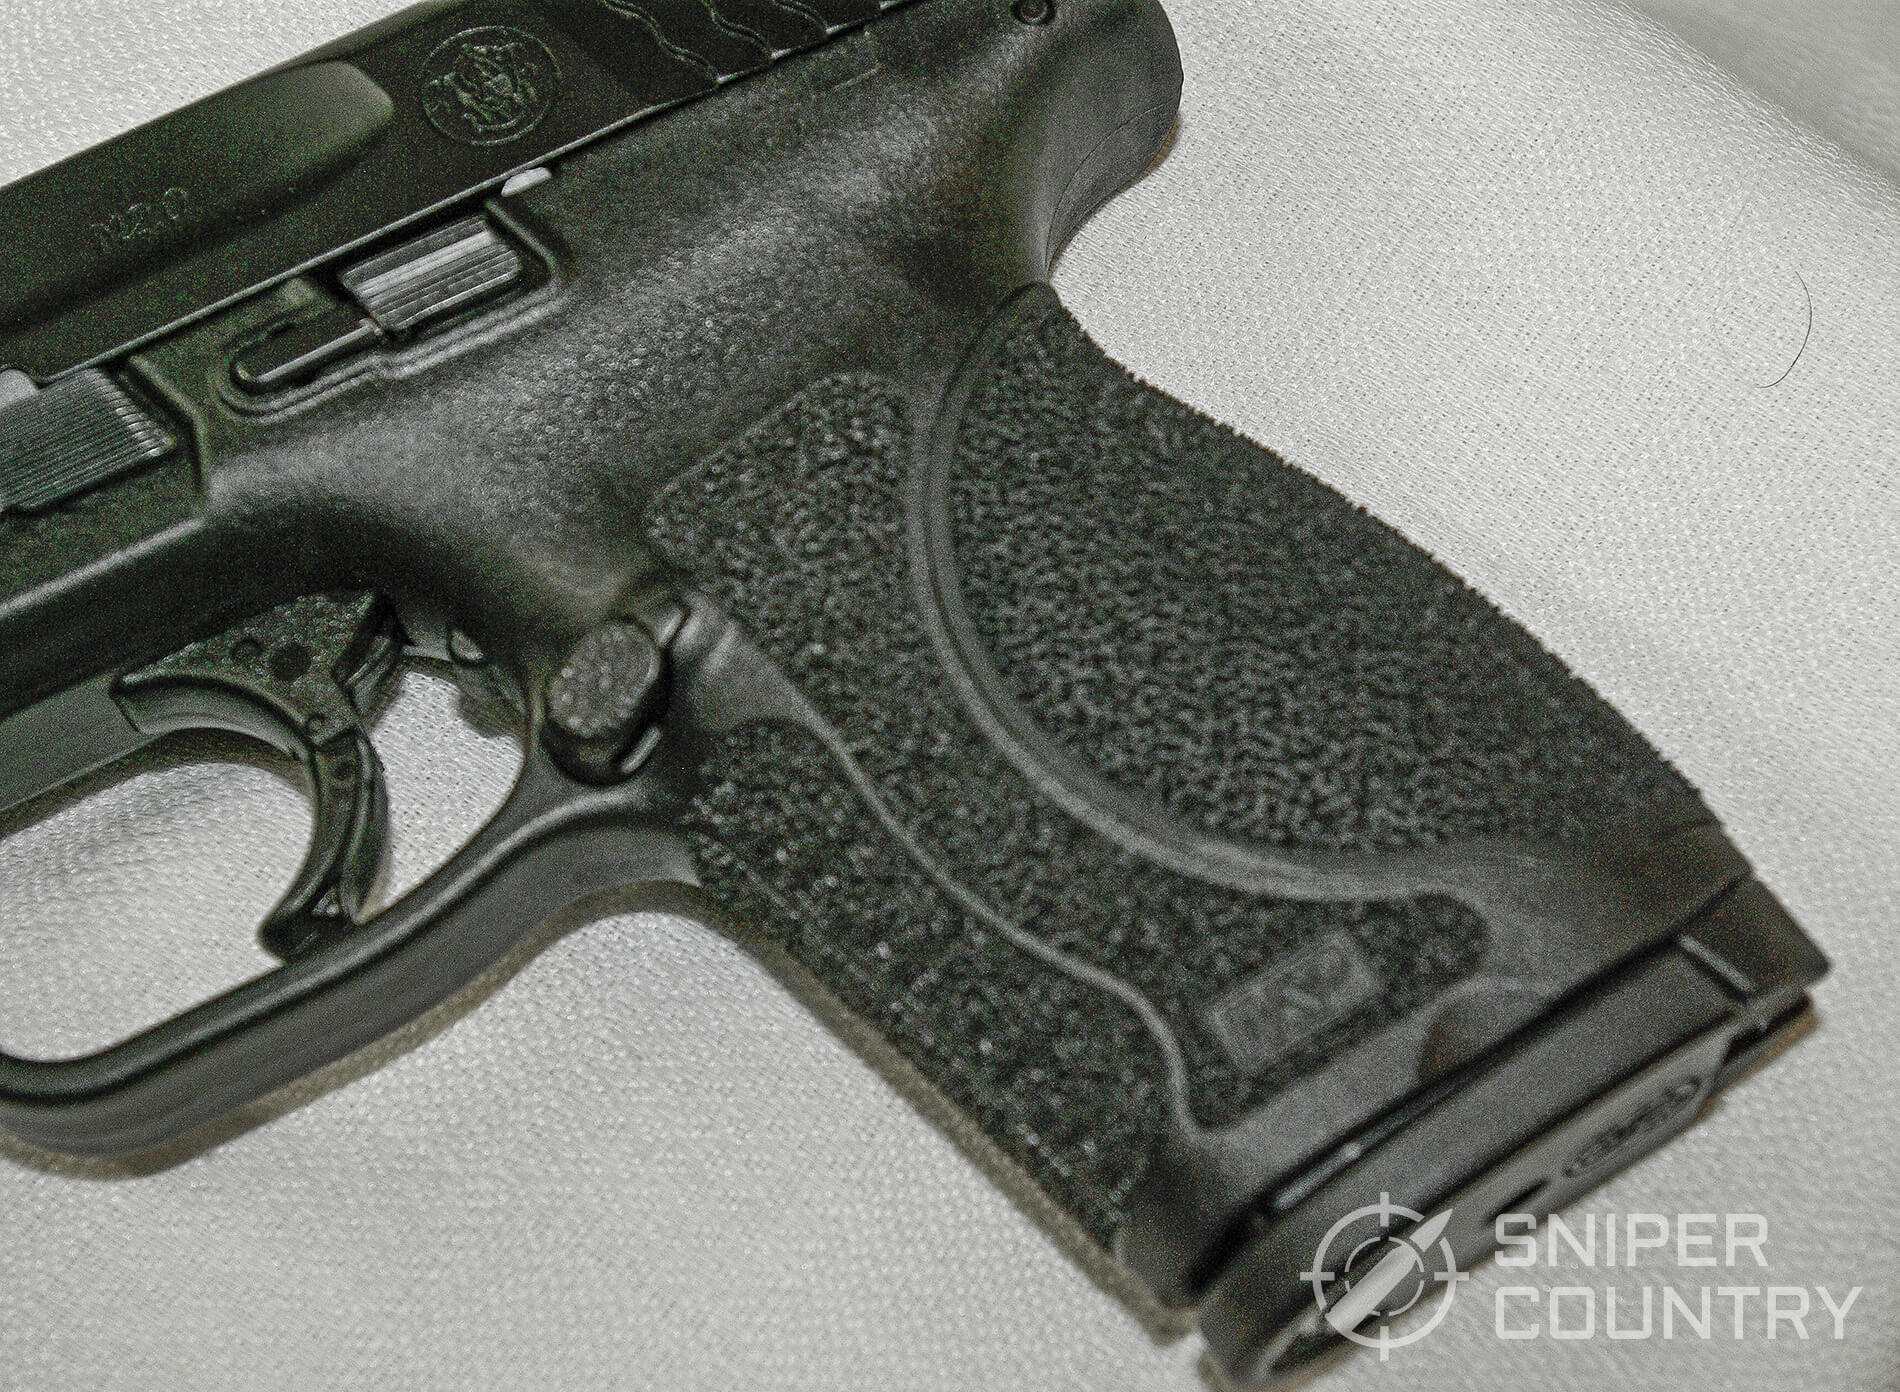 Smith & Wesson M&P 9C 2.0 Grip